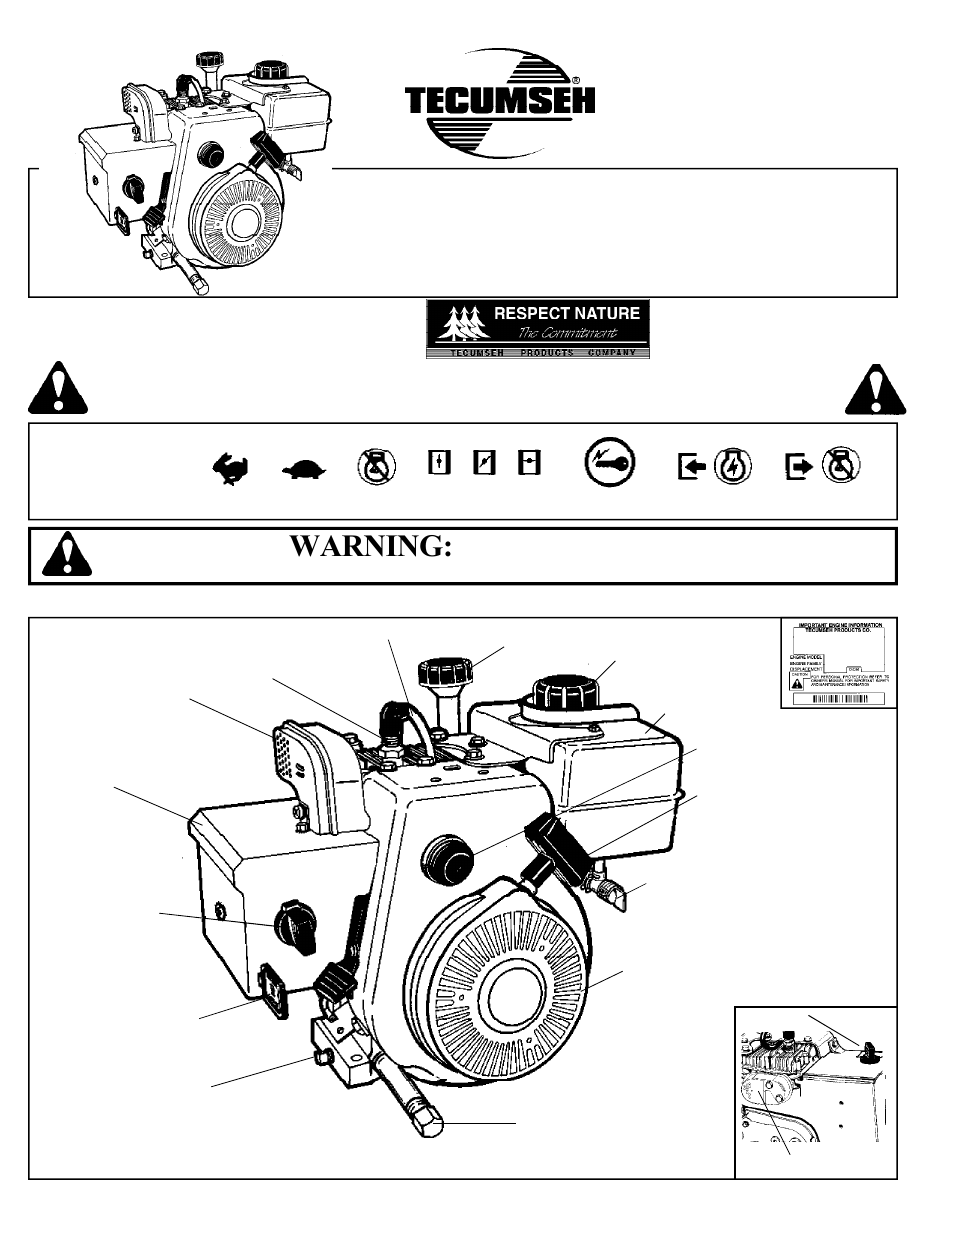 Diagram likewise Hqdefault likewise Hqdefault together with Diagram together with Diagram. on briggs and stratton wiring diagram